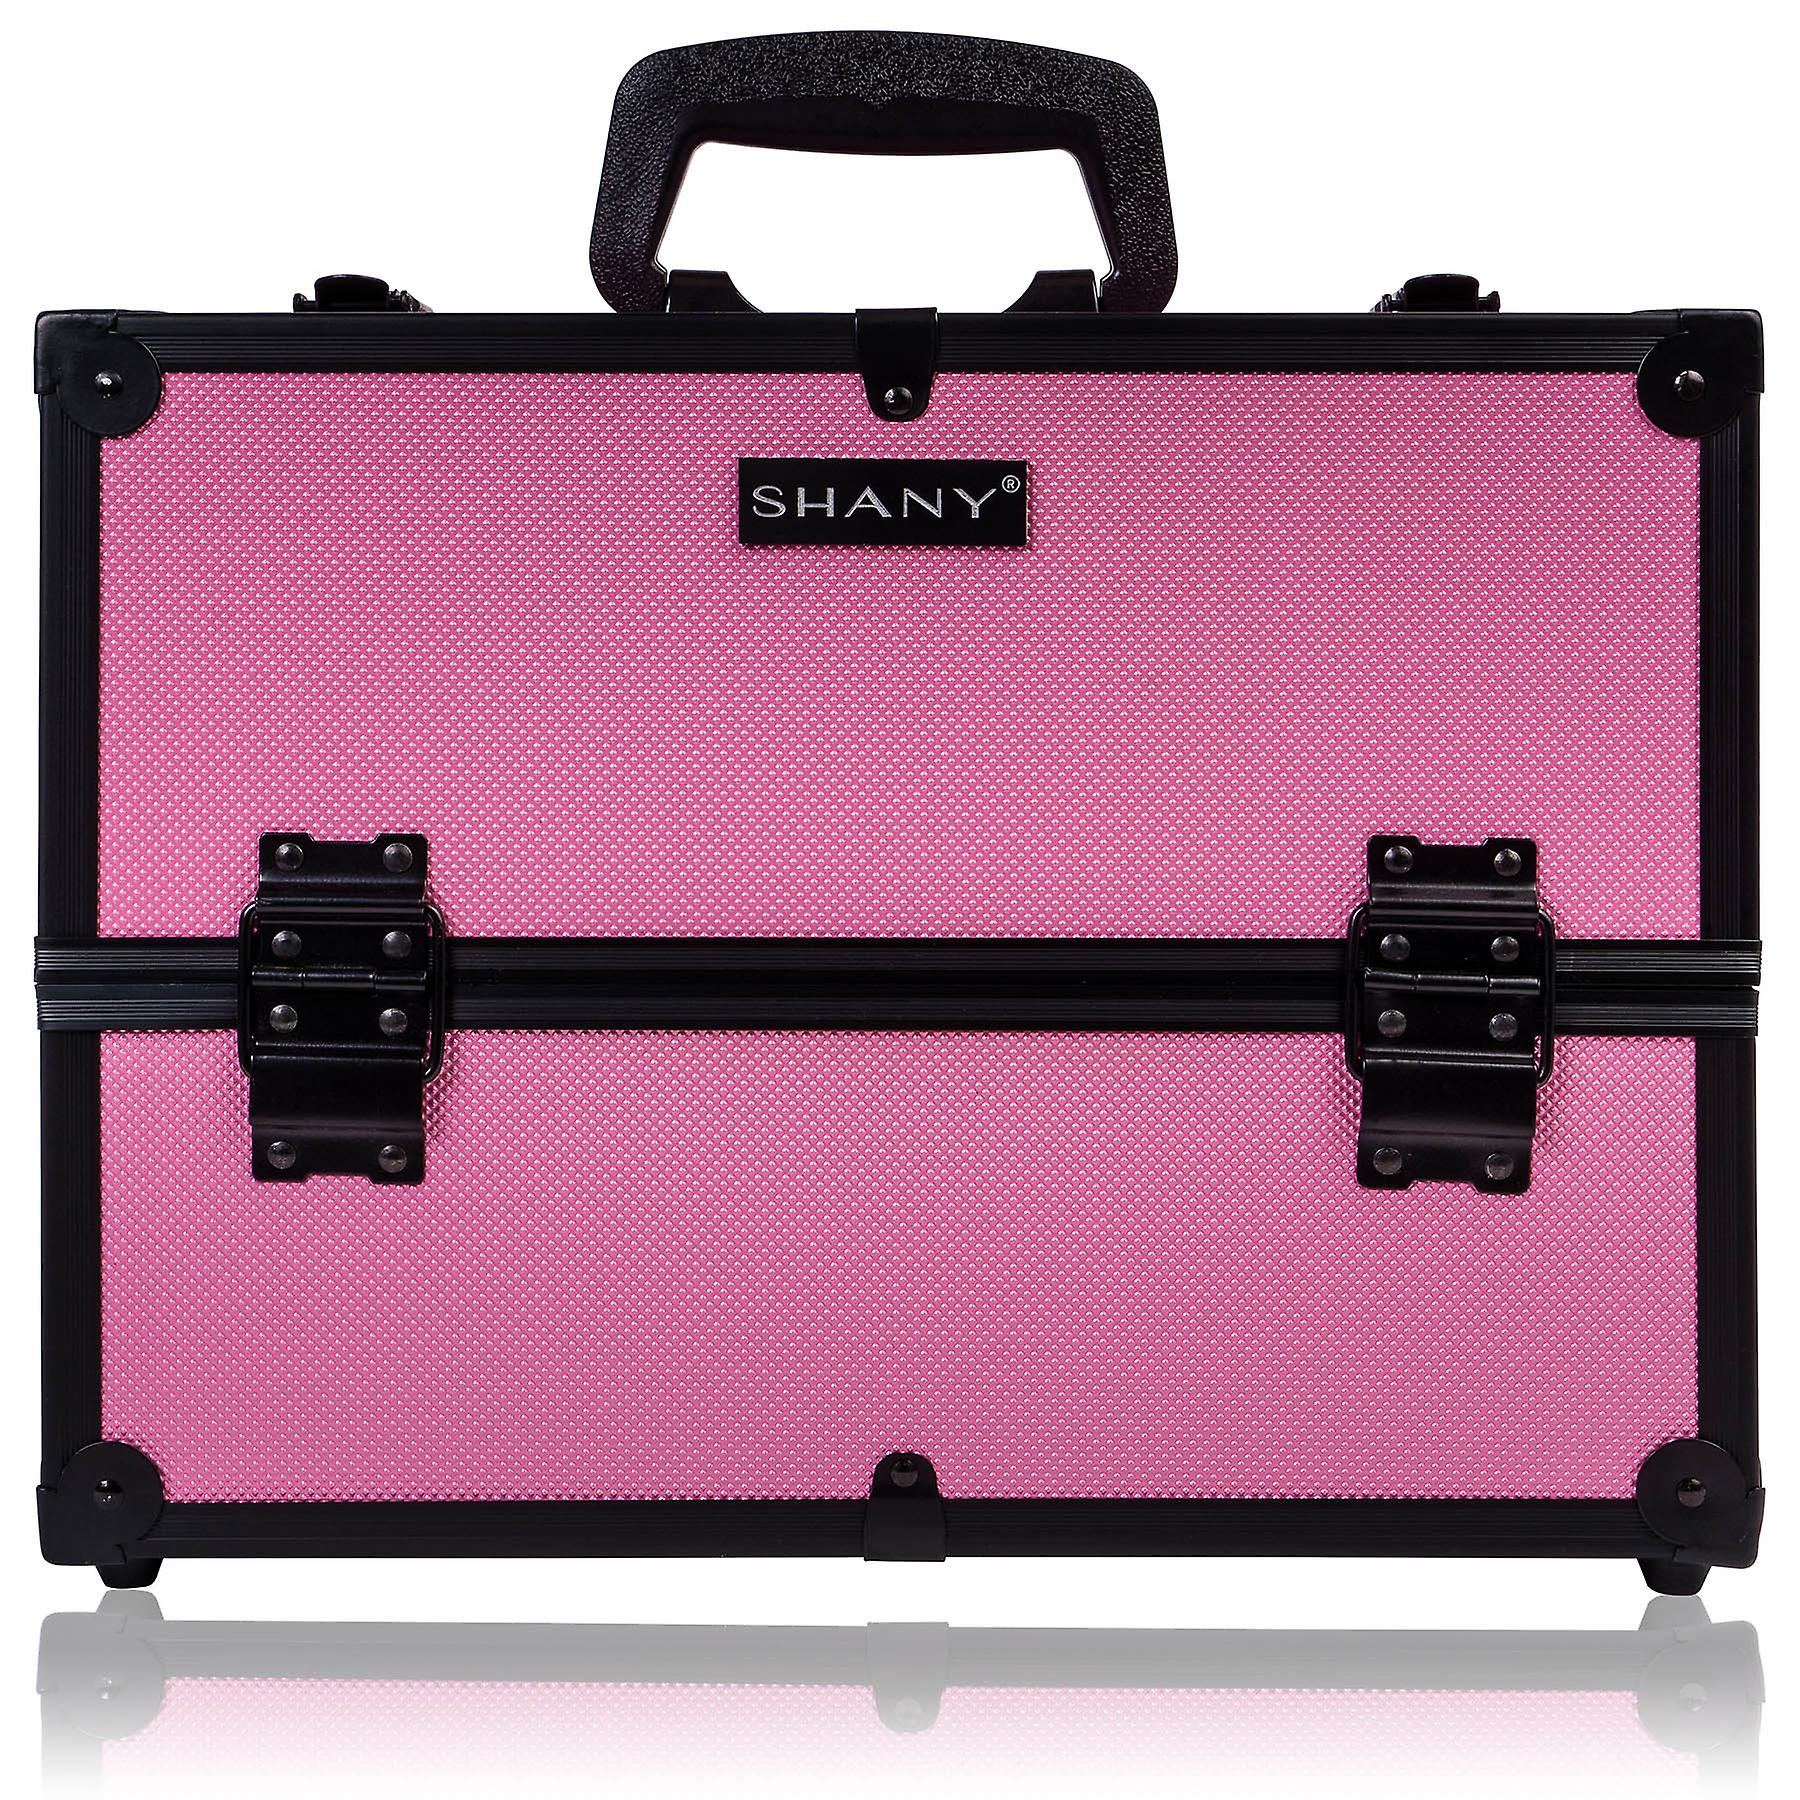 SHANY Essential Pro Makeup Train Case with Shoulder Strap and Locks